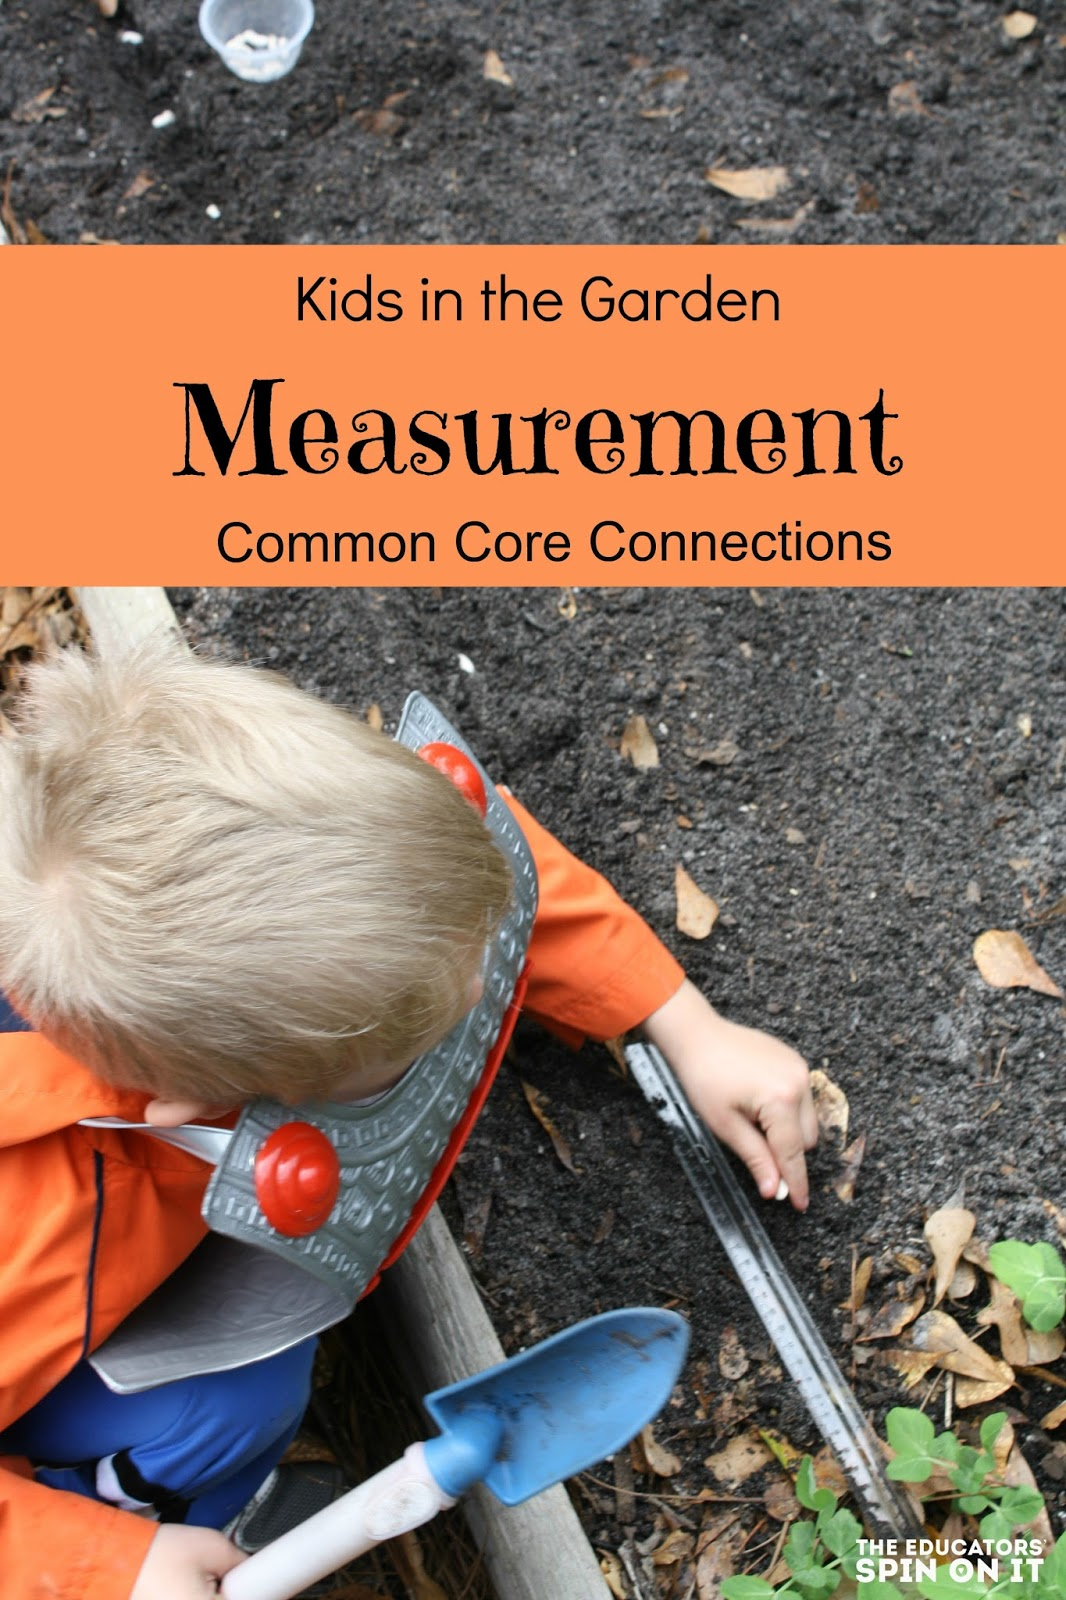 Common Core Connection with measuring in the garden